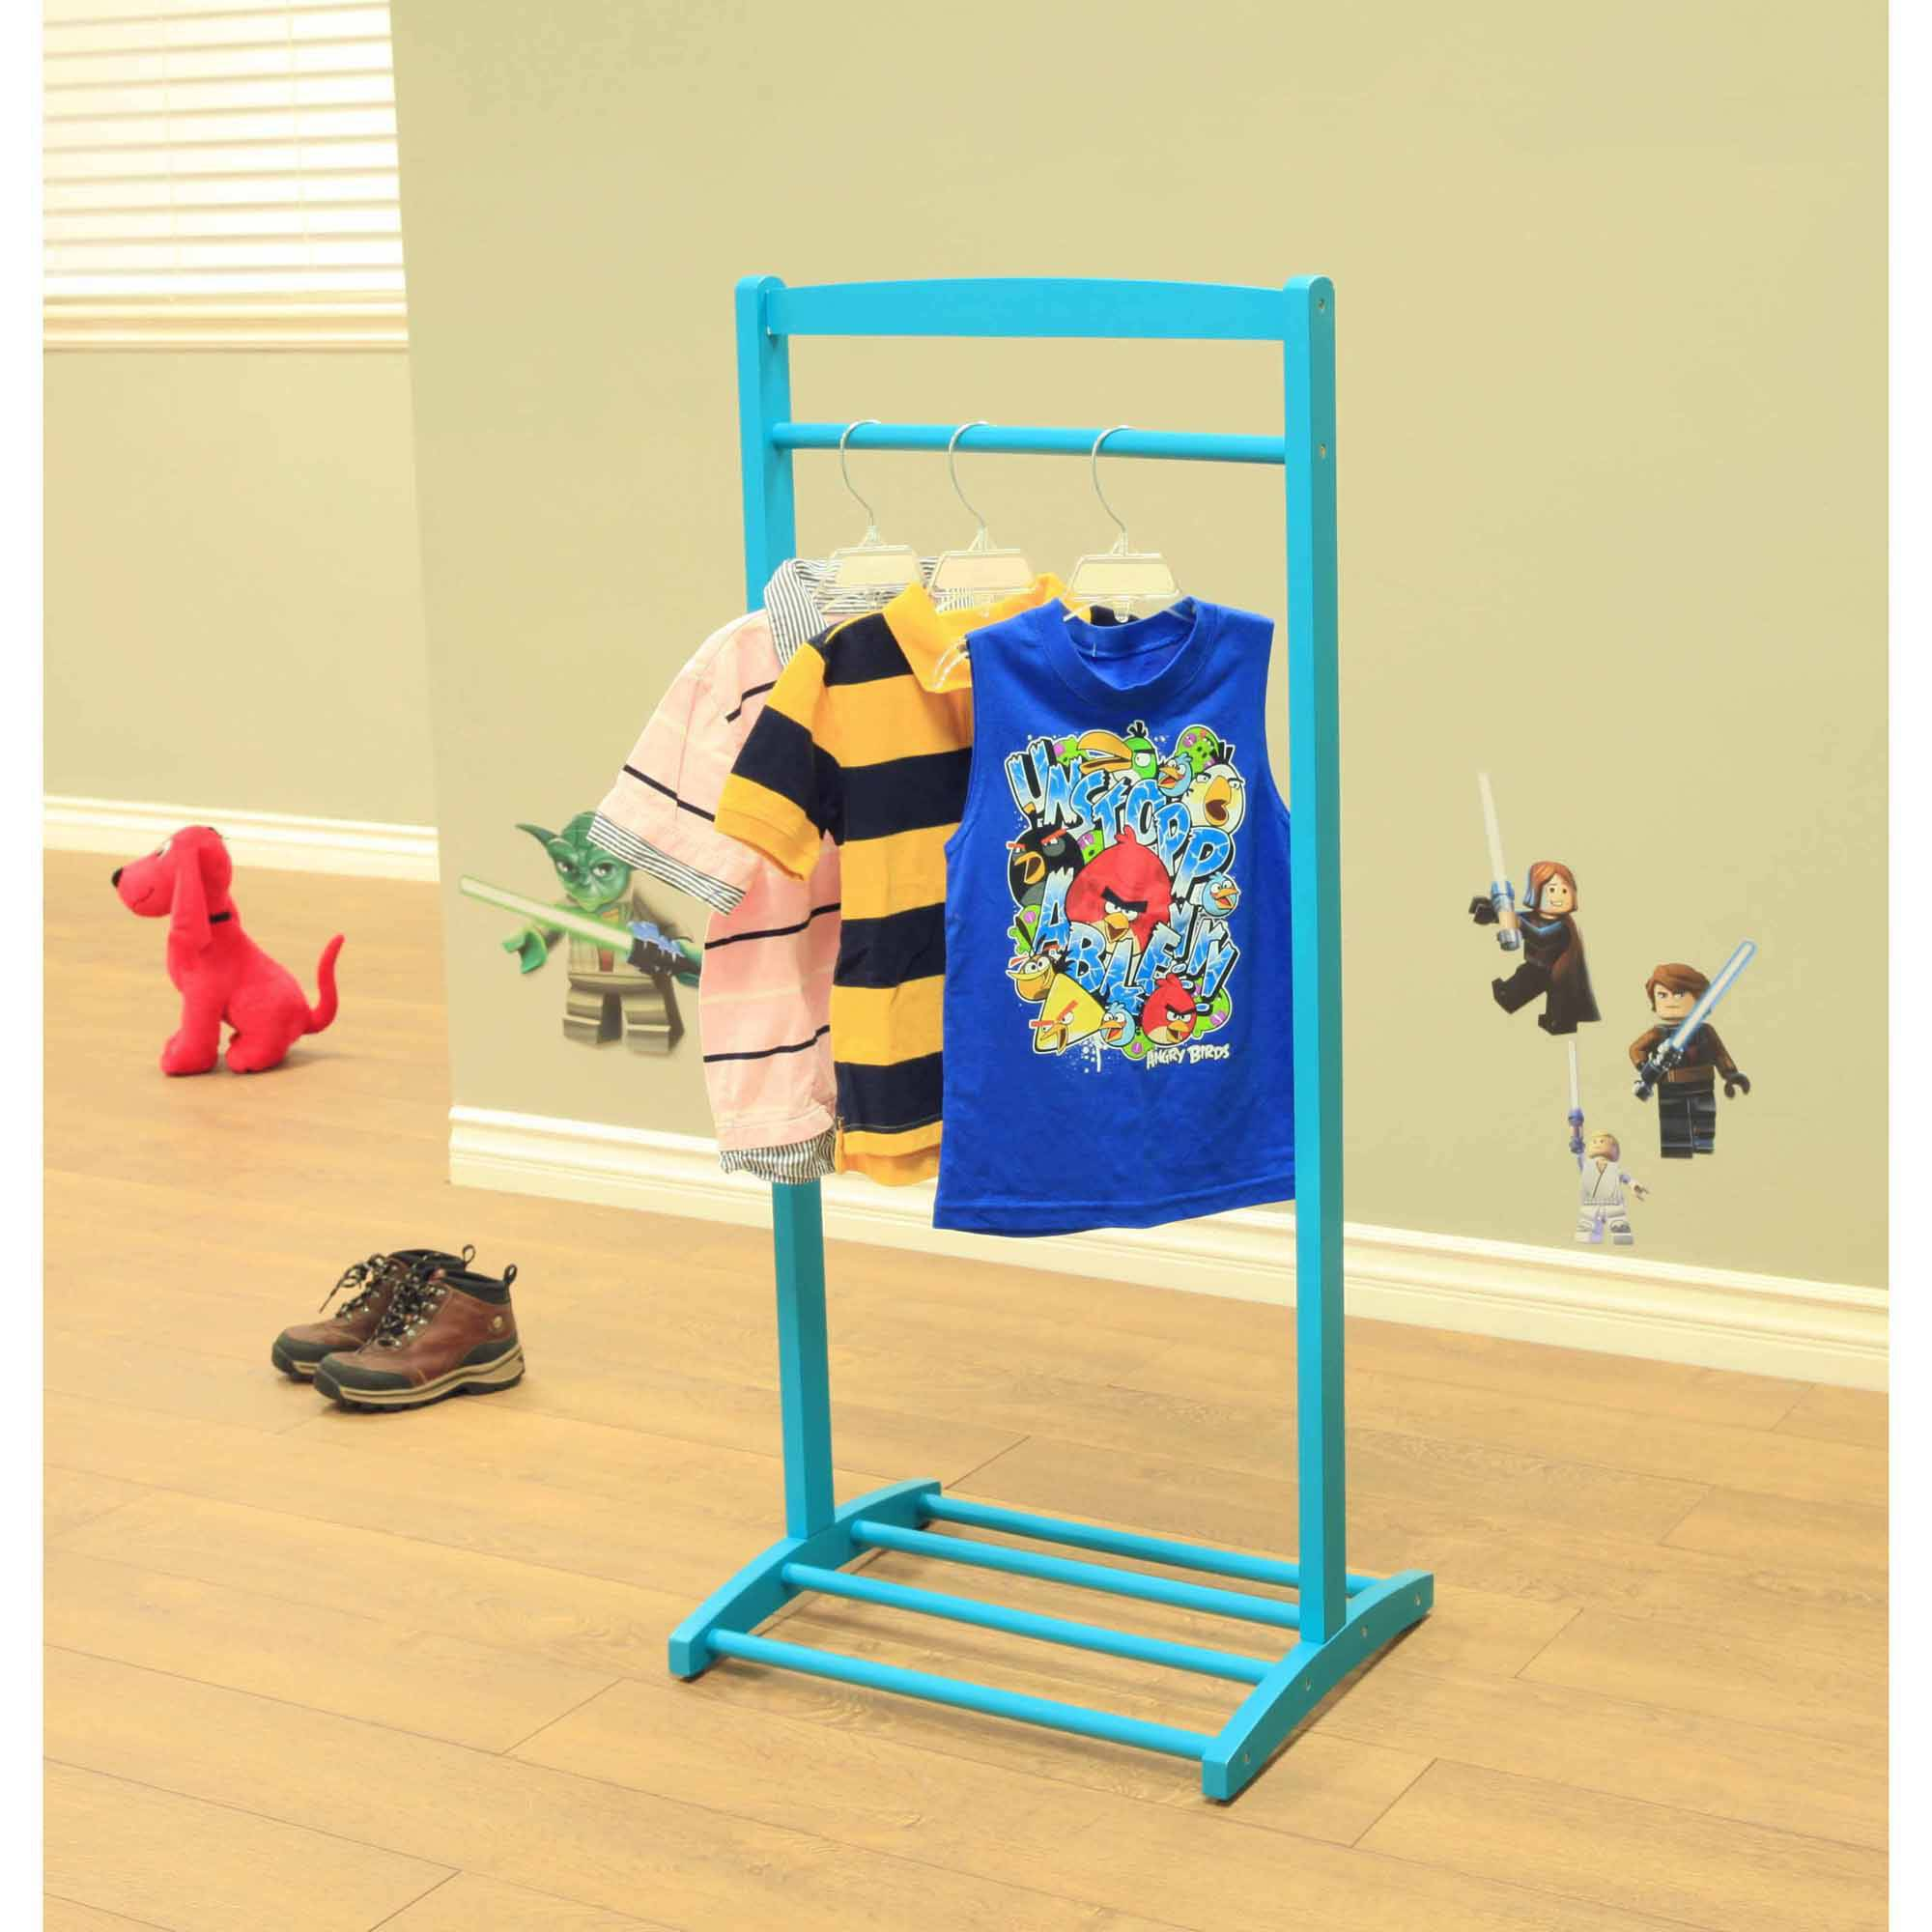 Home Craft Kids' Clothes Rack, Blue by Generic